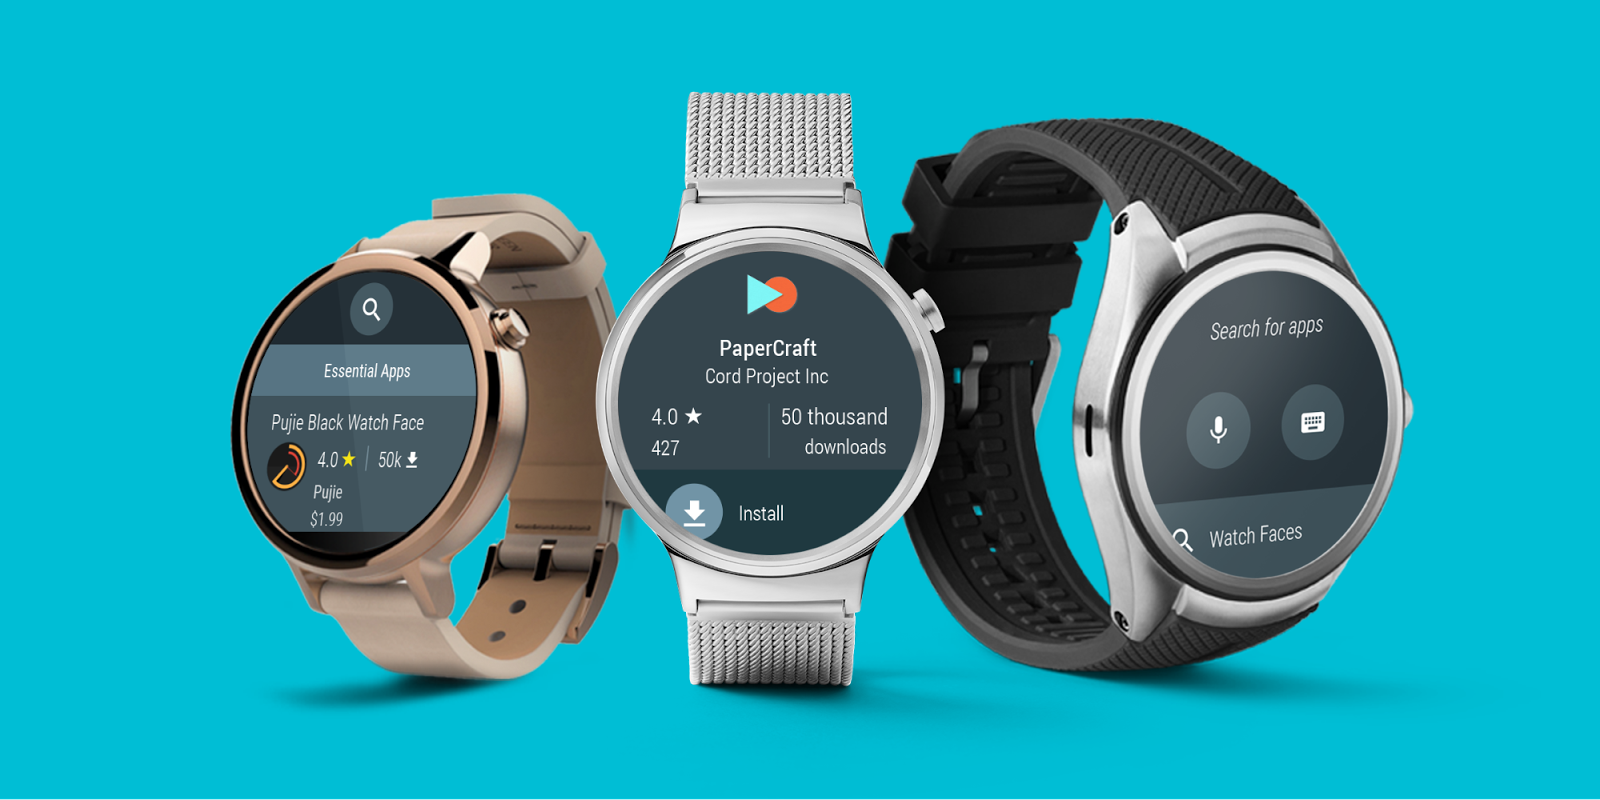 Android Wear 2.0 watch